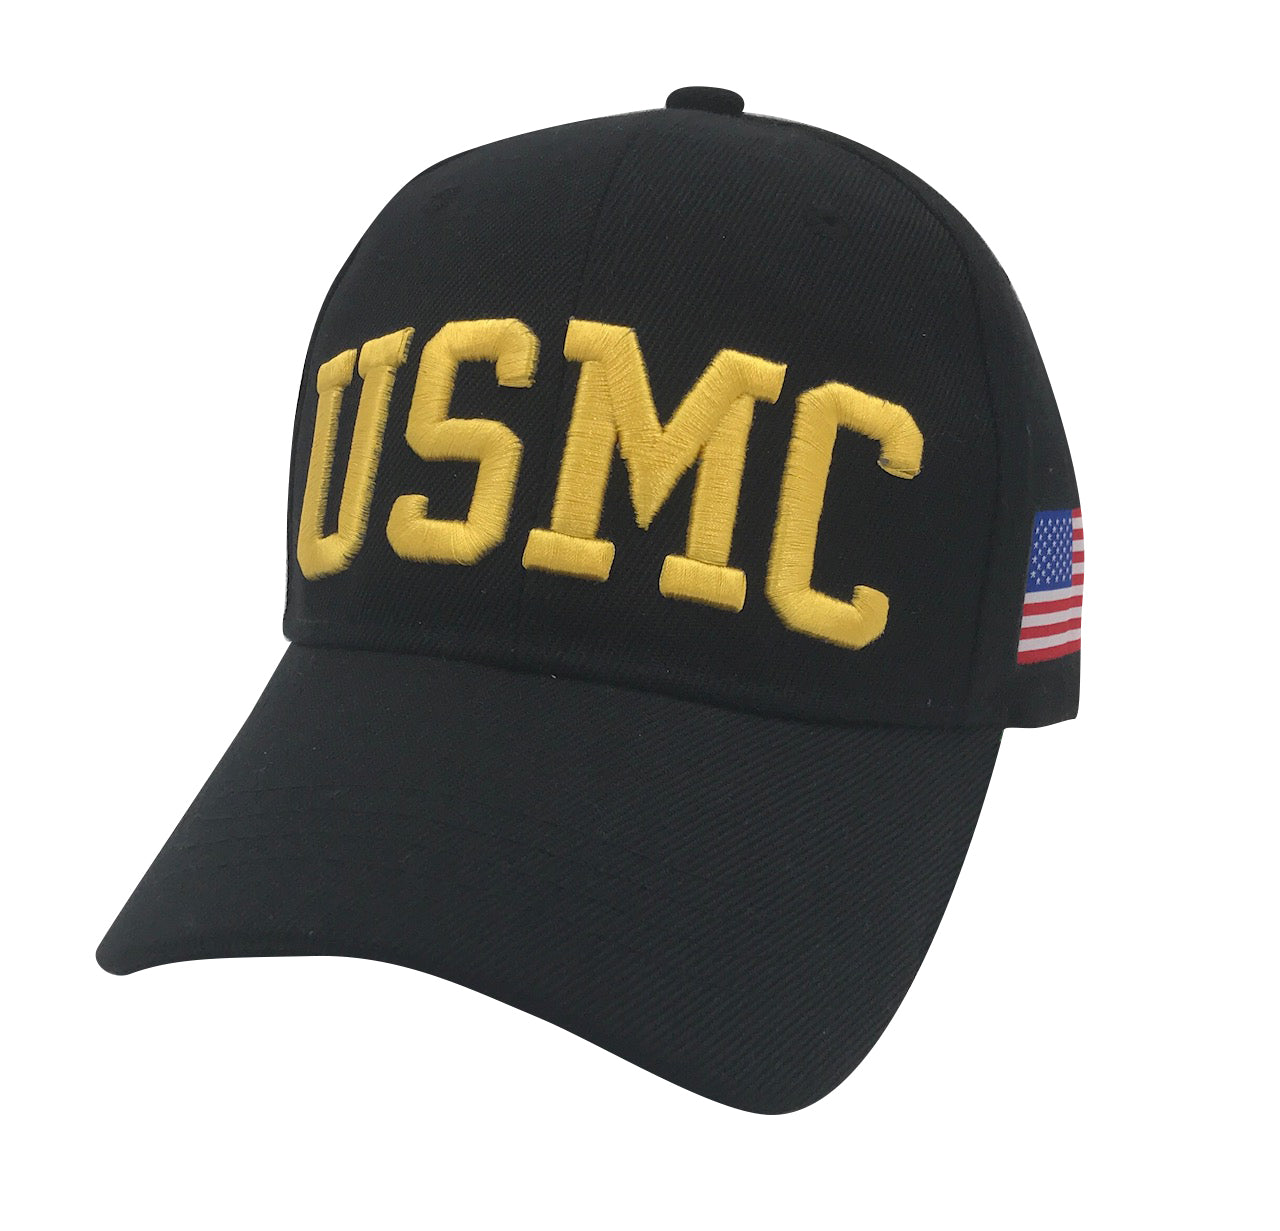 USMC Acrylic Cap - Black by Icon Sports